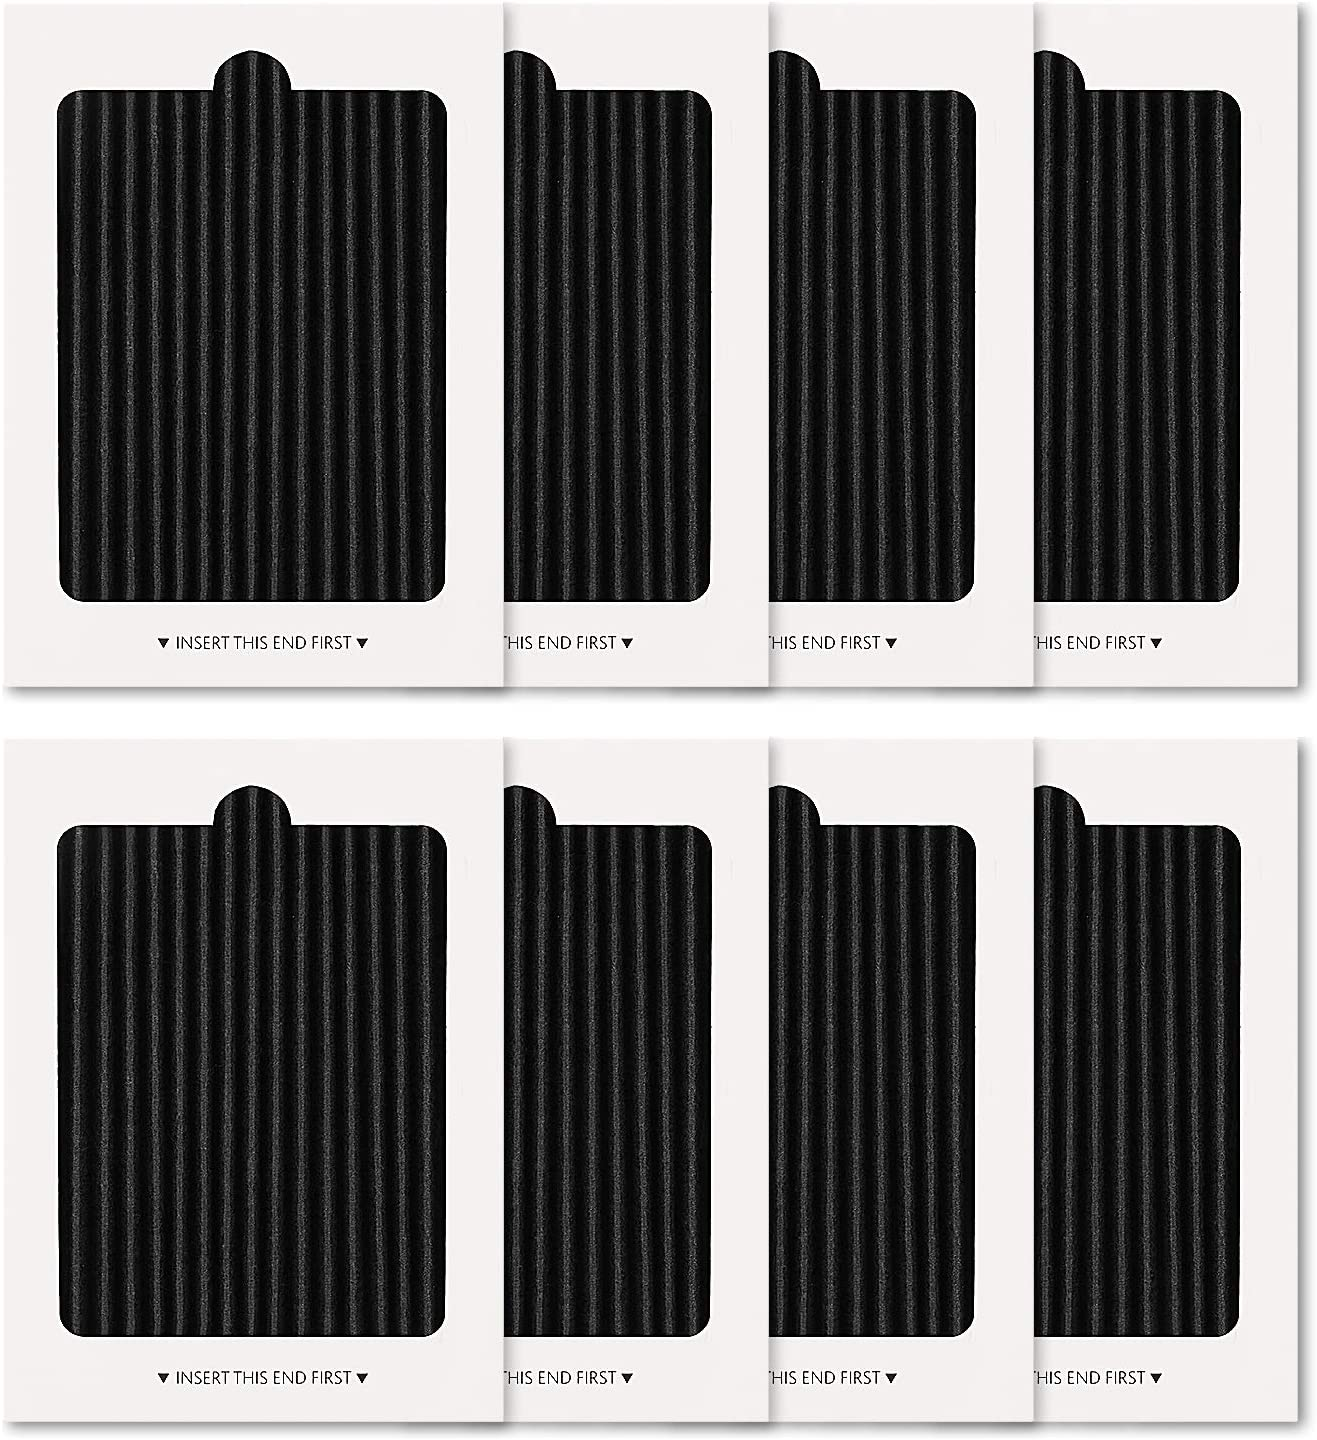 LINNIW 8 Pack Refrigerator Air Filter Replacement, Compatible with SCPUREAIR2PK, EAFCBF PAULTRA 242047801, 242061001, 7241754001